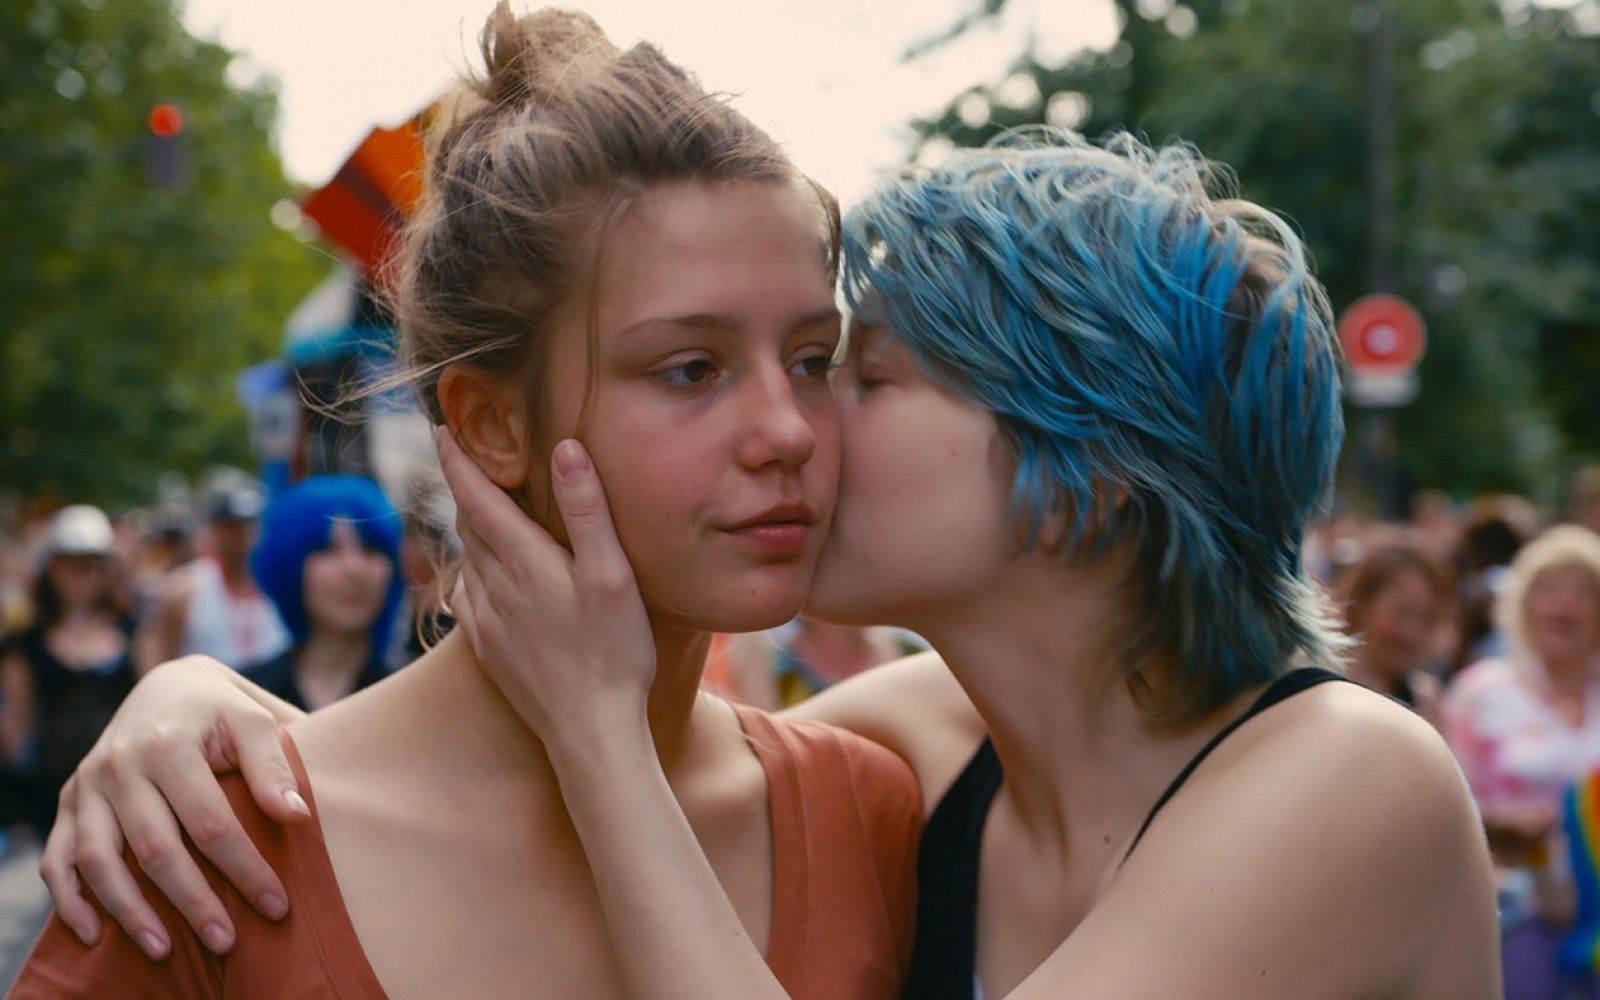 15 Quotes From 'Blue Is The Warmest Color' That Capture The Infinite Tenderness Of First Love